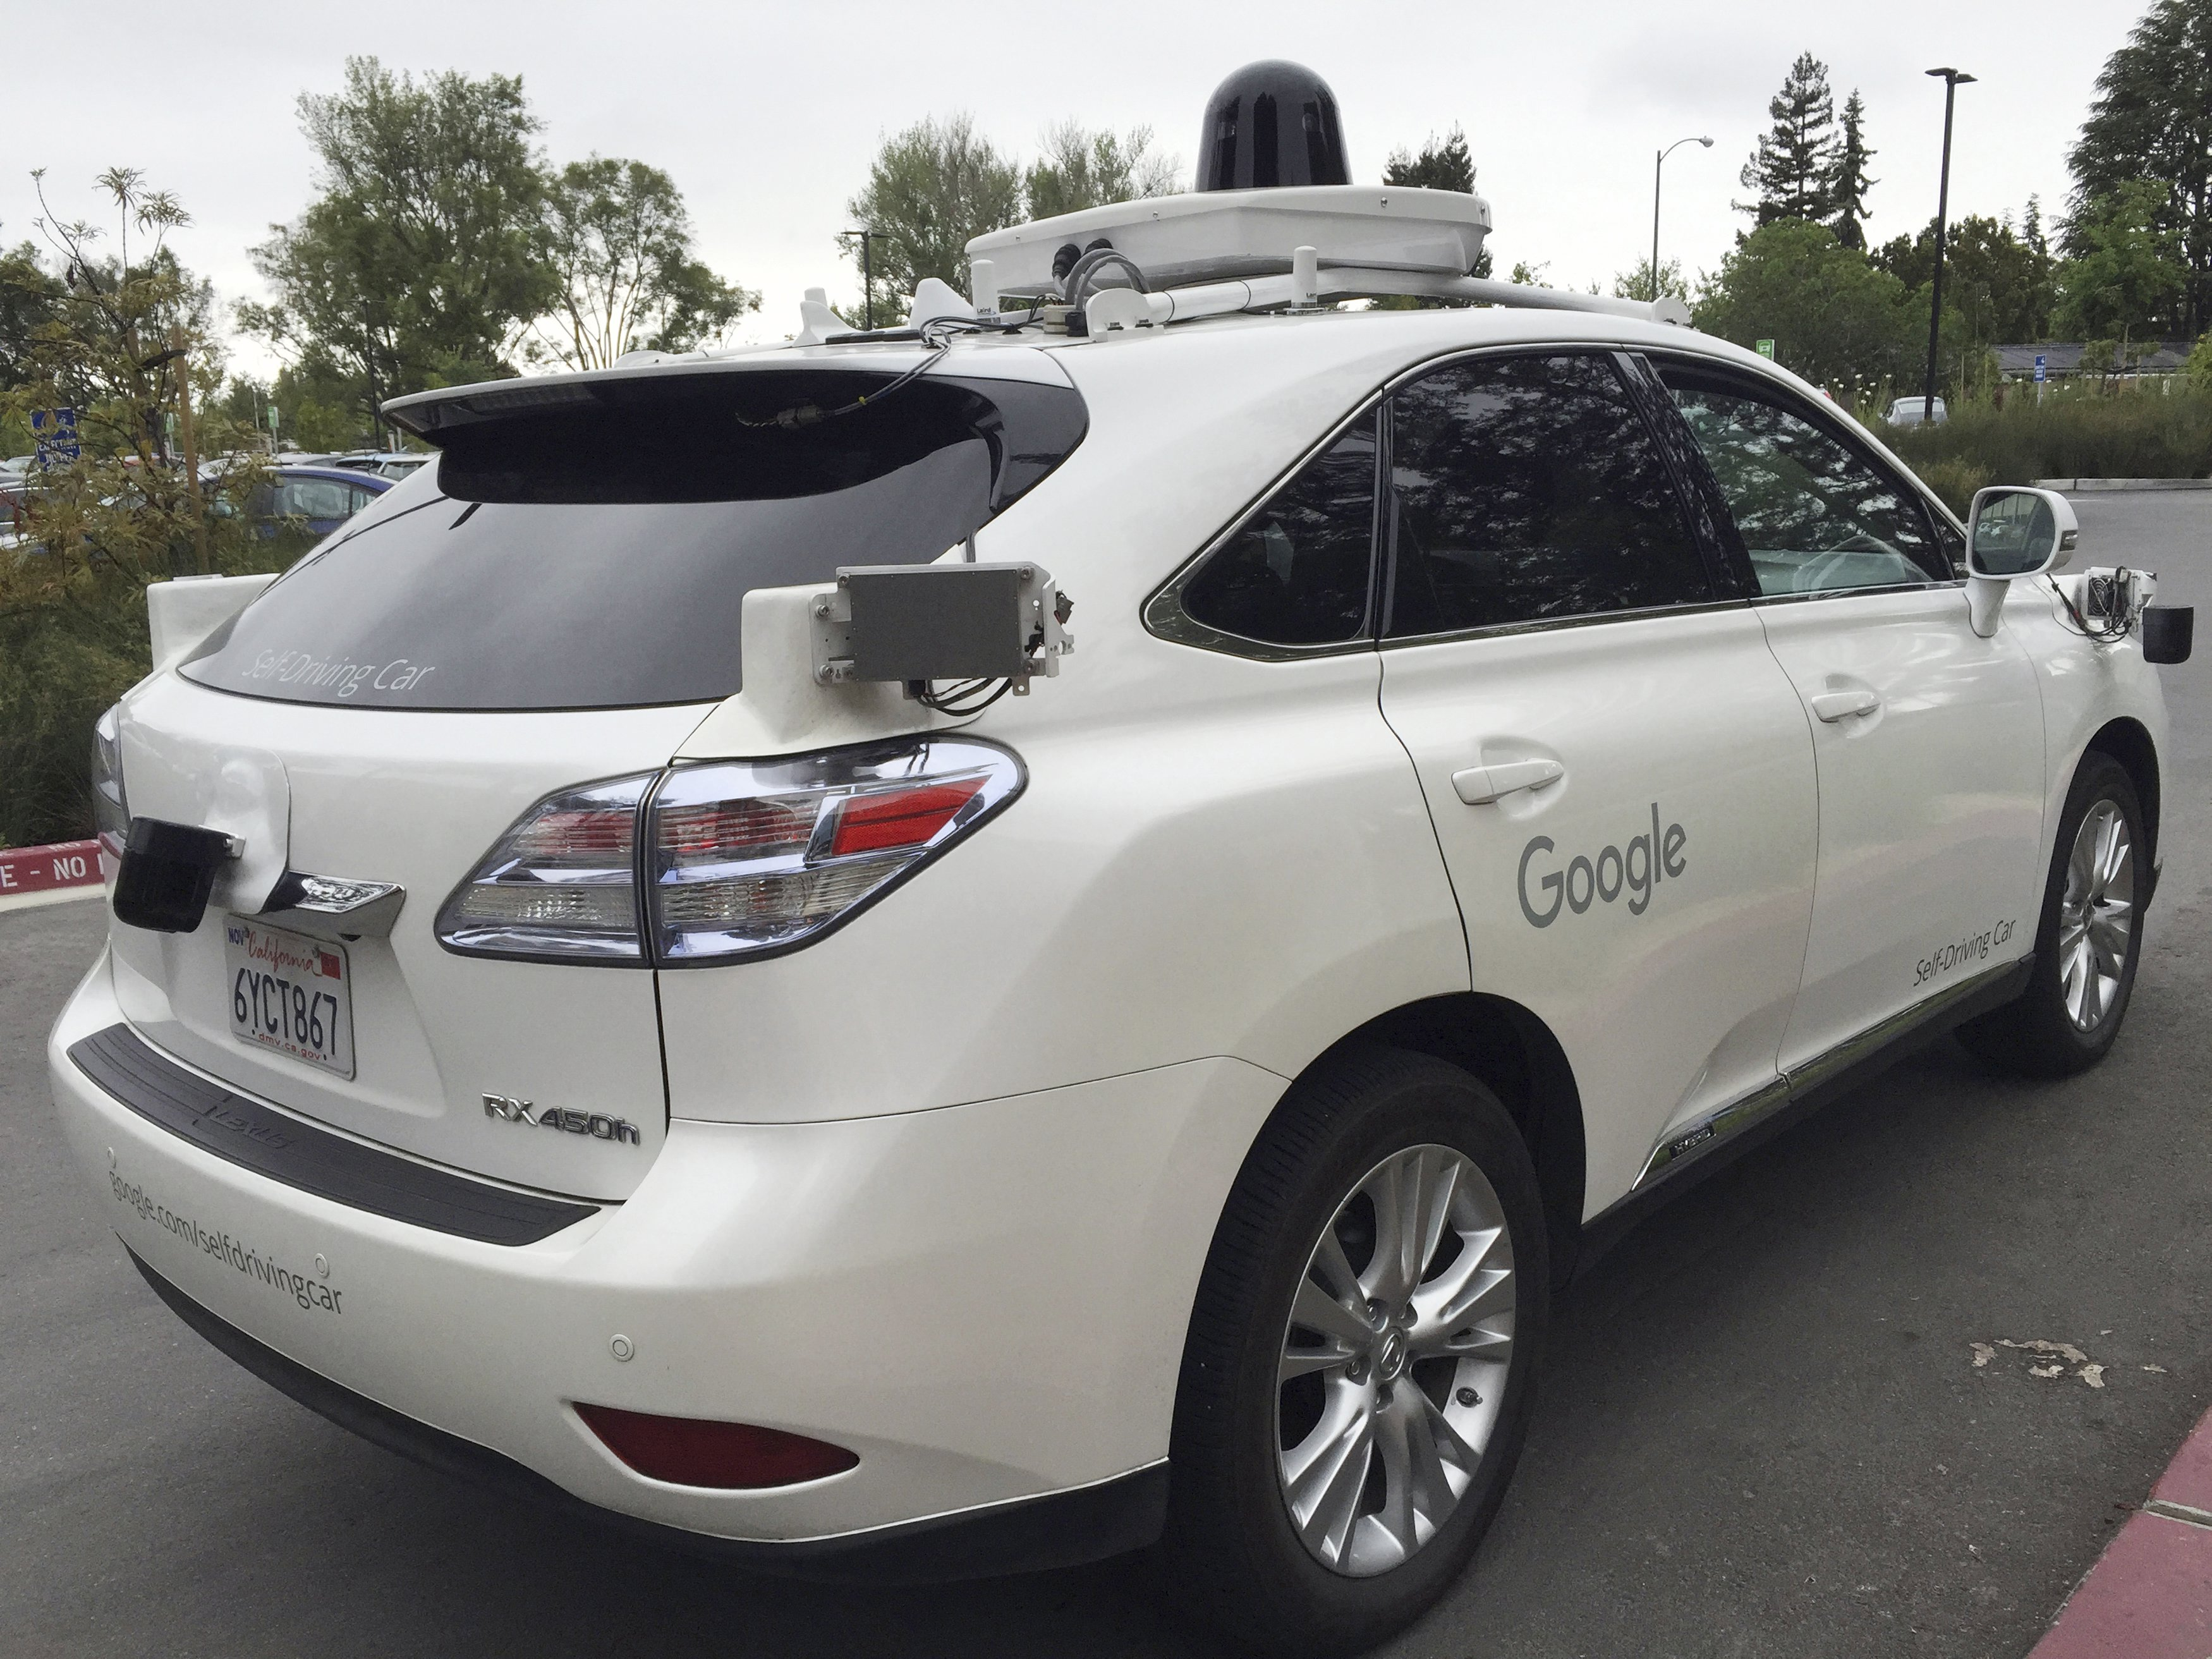 Insurance for self-driving cars    a complex question